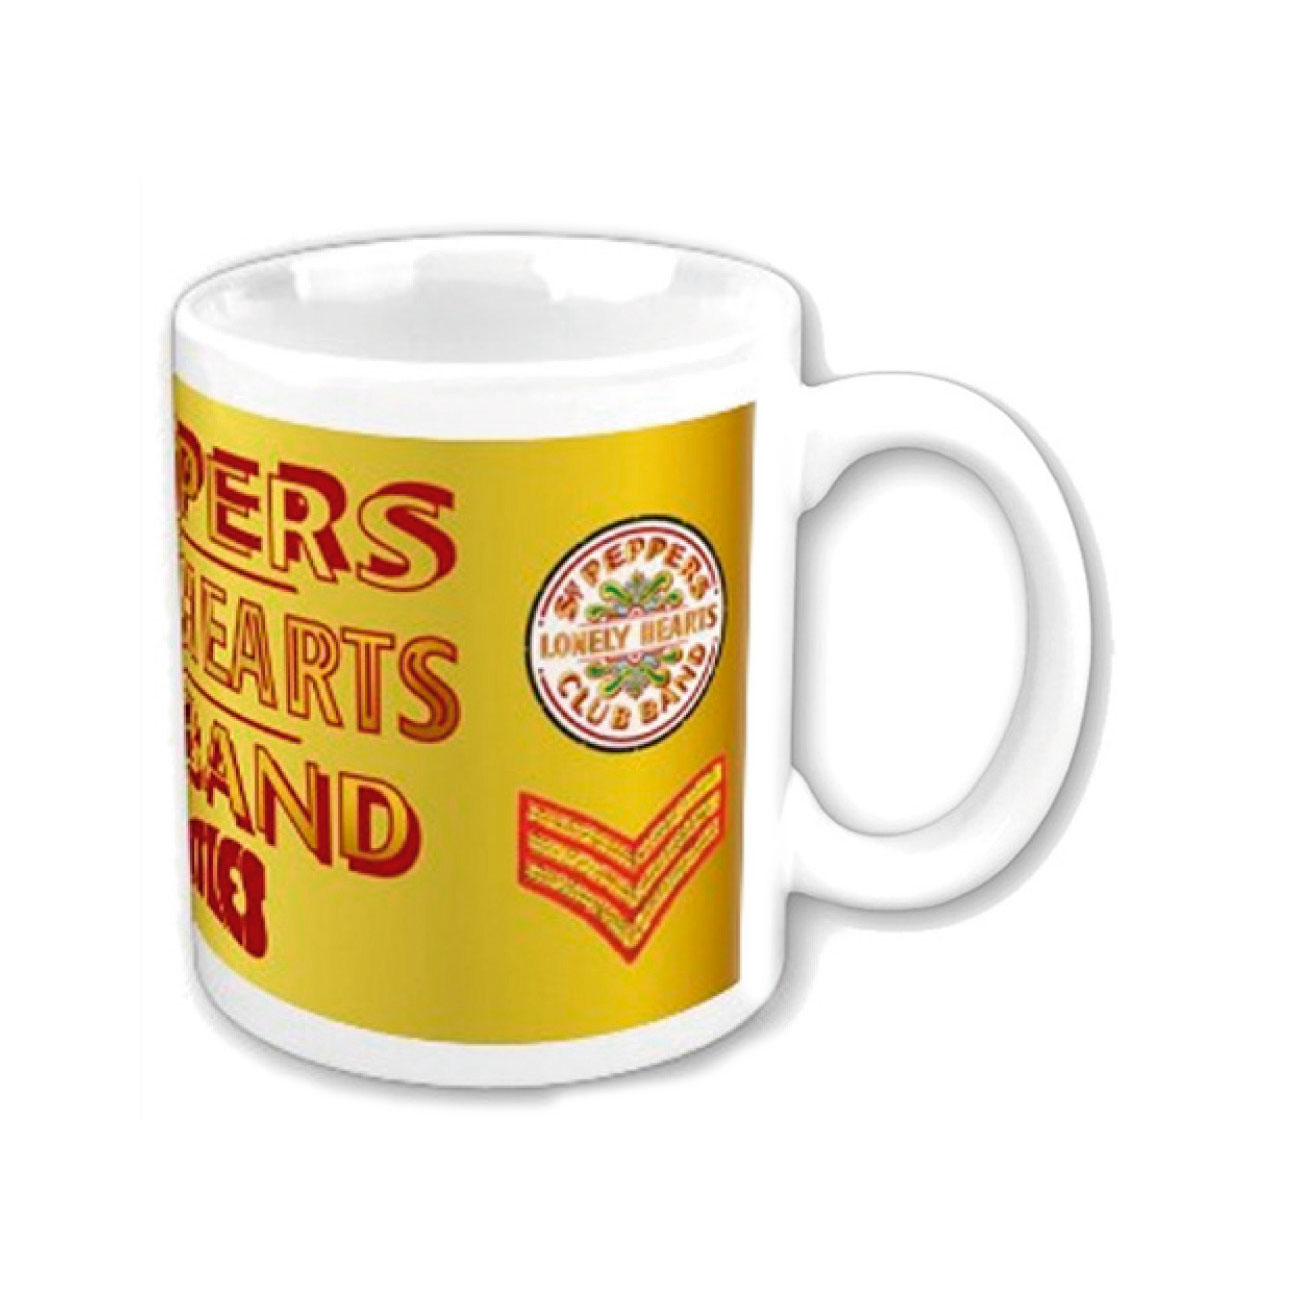 Beatles Mug Sgt Pepper. Emi Music officially licensed product.